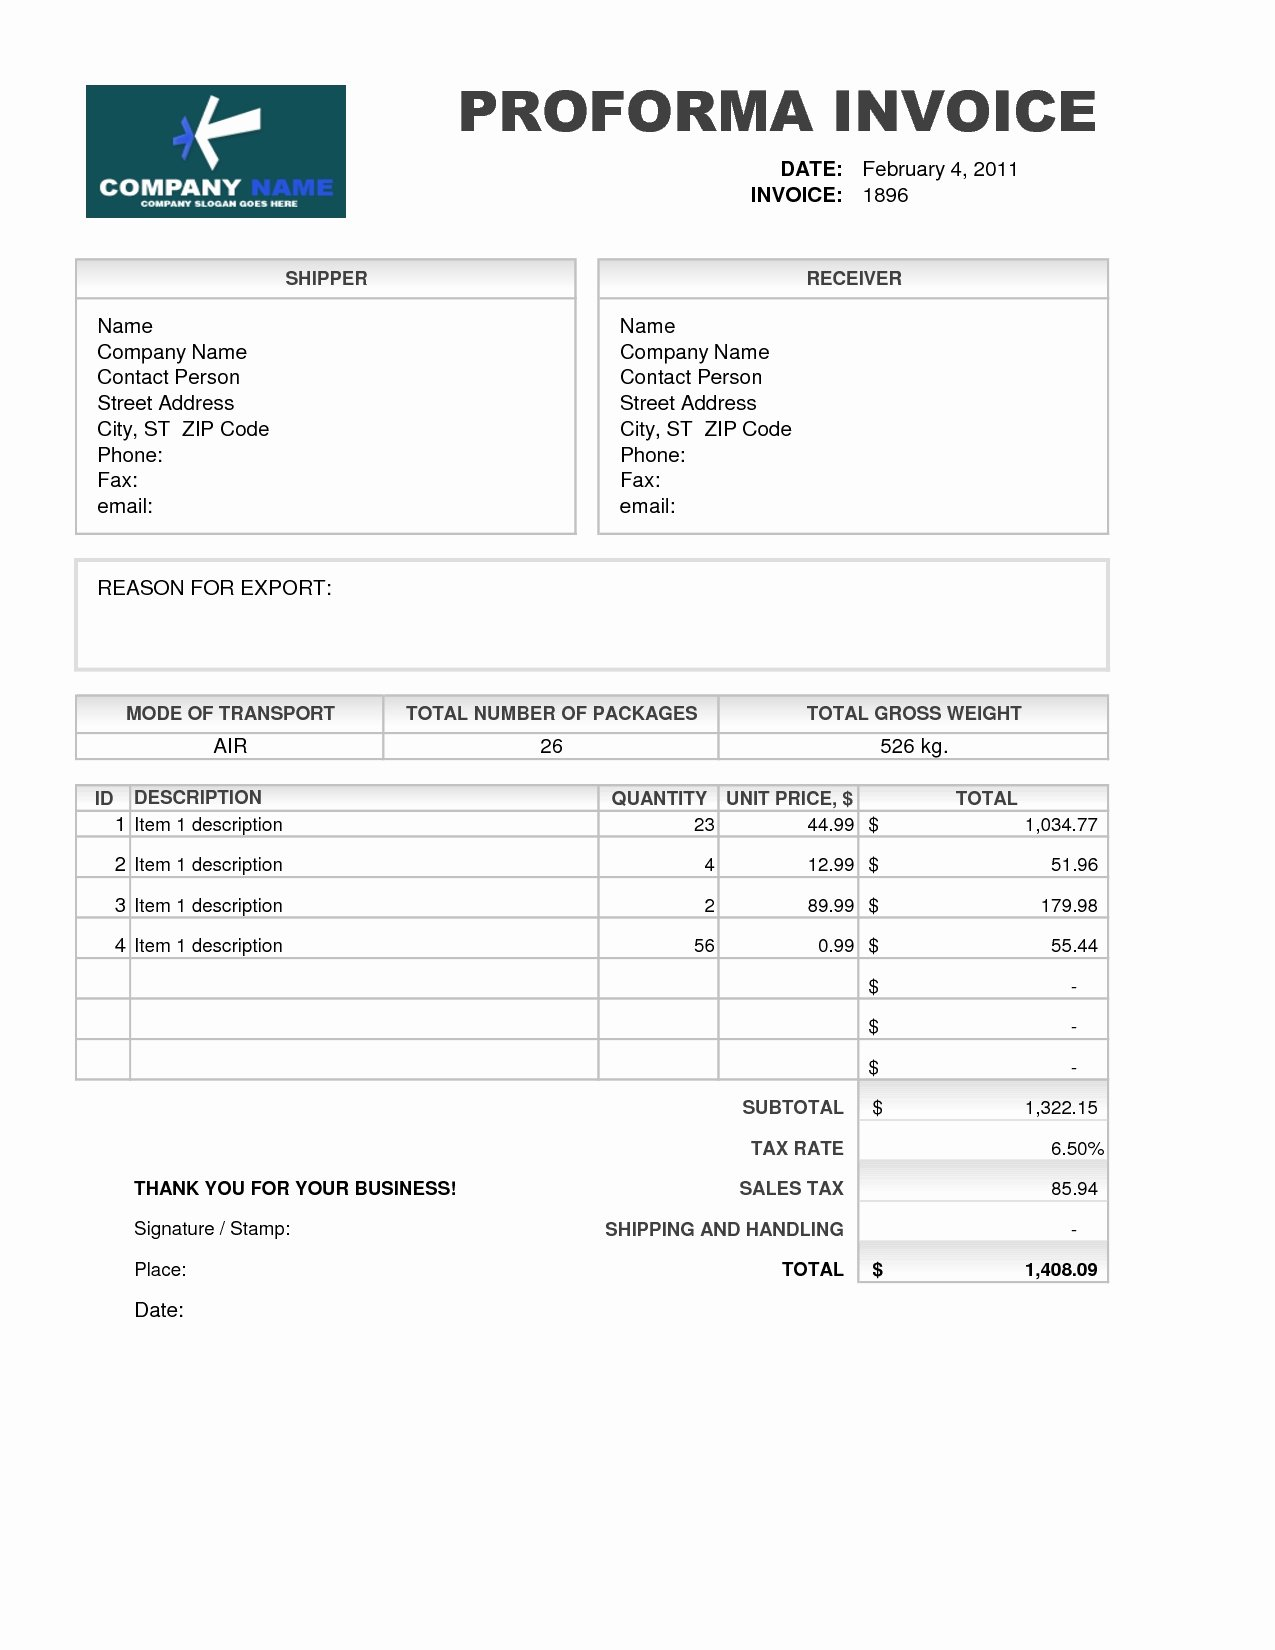 Free Proforma Invoice Template Beautiful Proforma Invoice Template Download Free Invoice Template